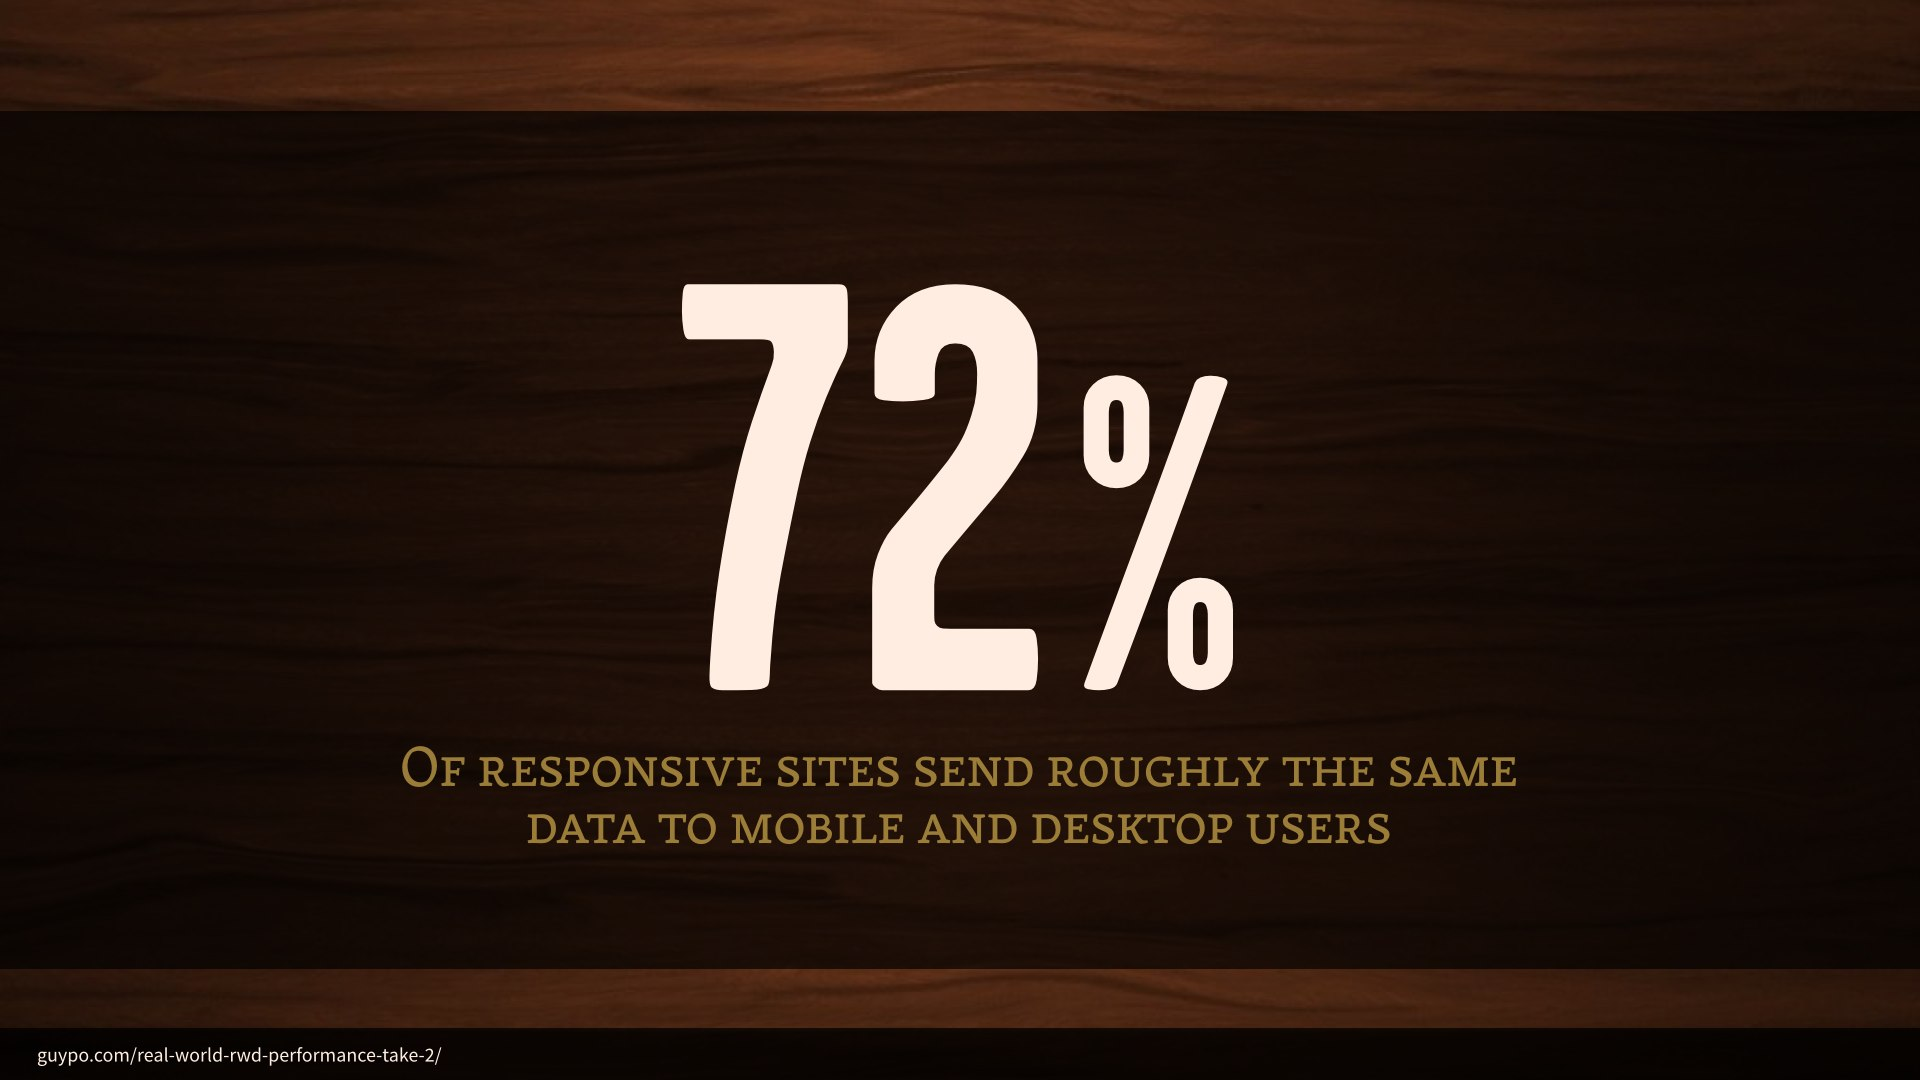 72% of responsive sites send roughly the same data to mobile and desktop users